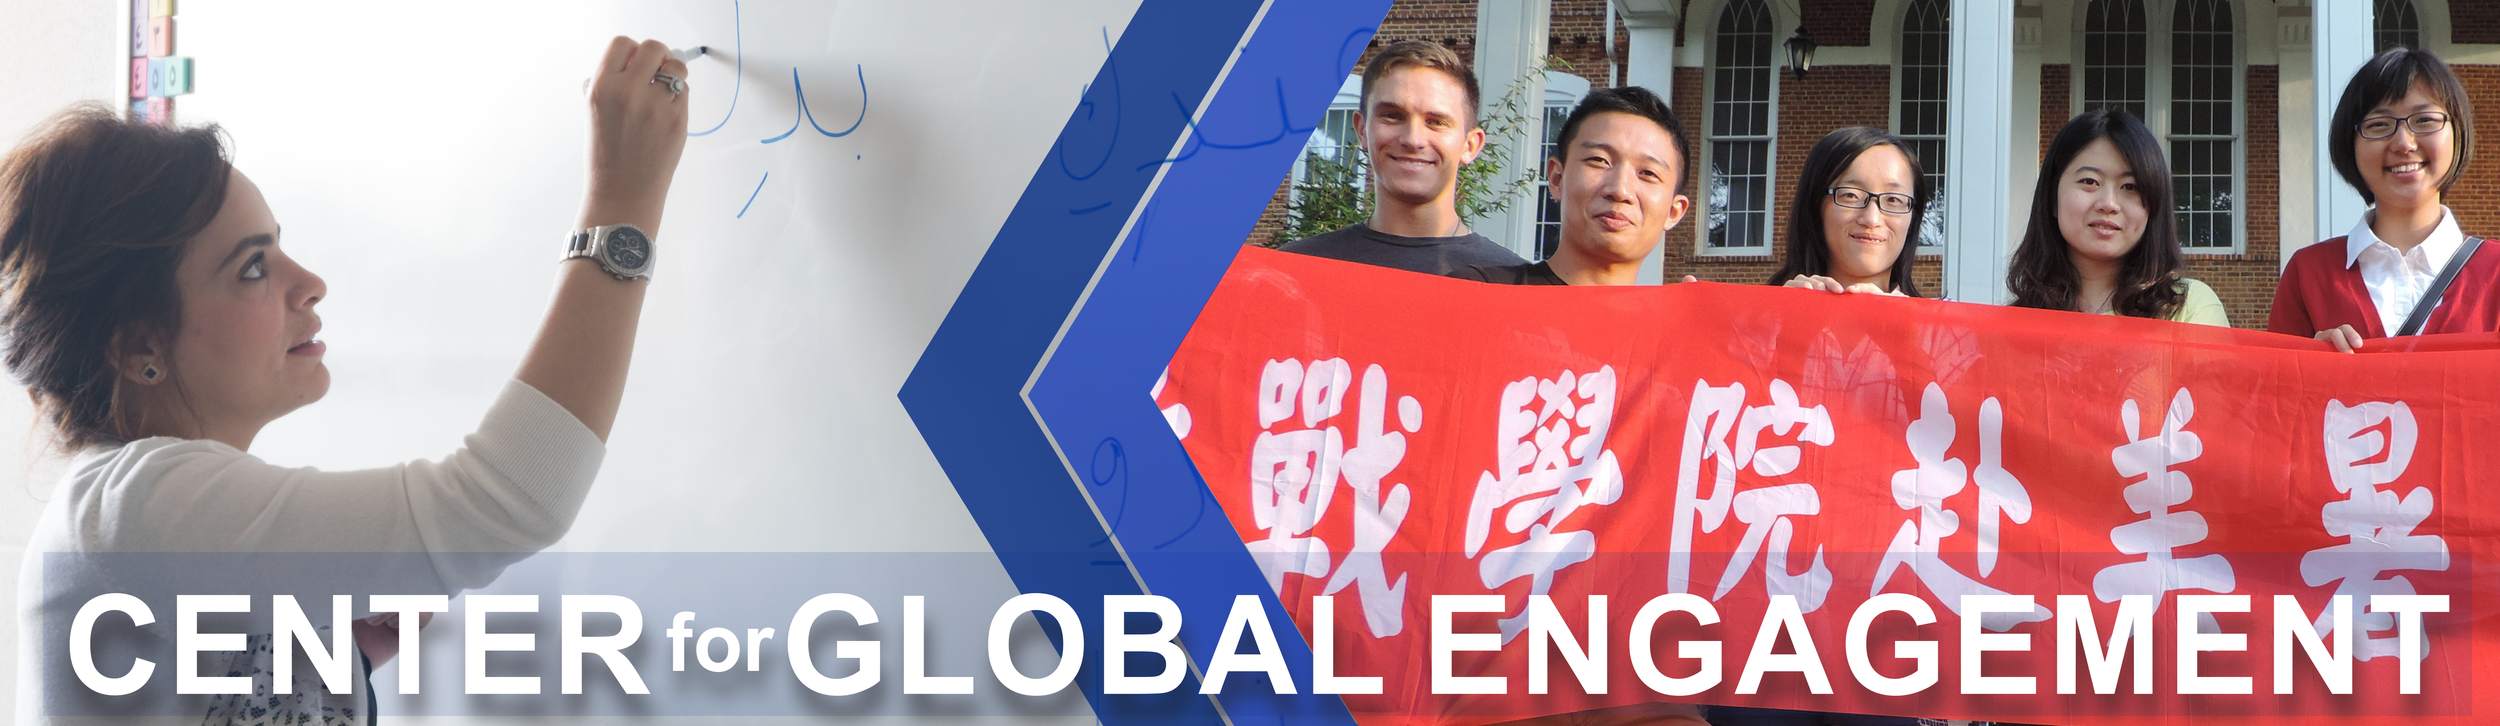 Center for Global Engagement page banner shows a professor writing Arabic on her white board. The second image shows International Students holding up a banner.